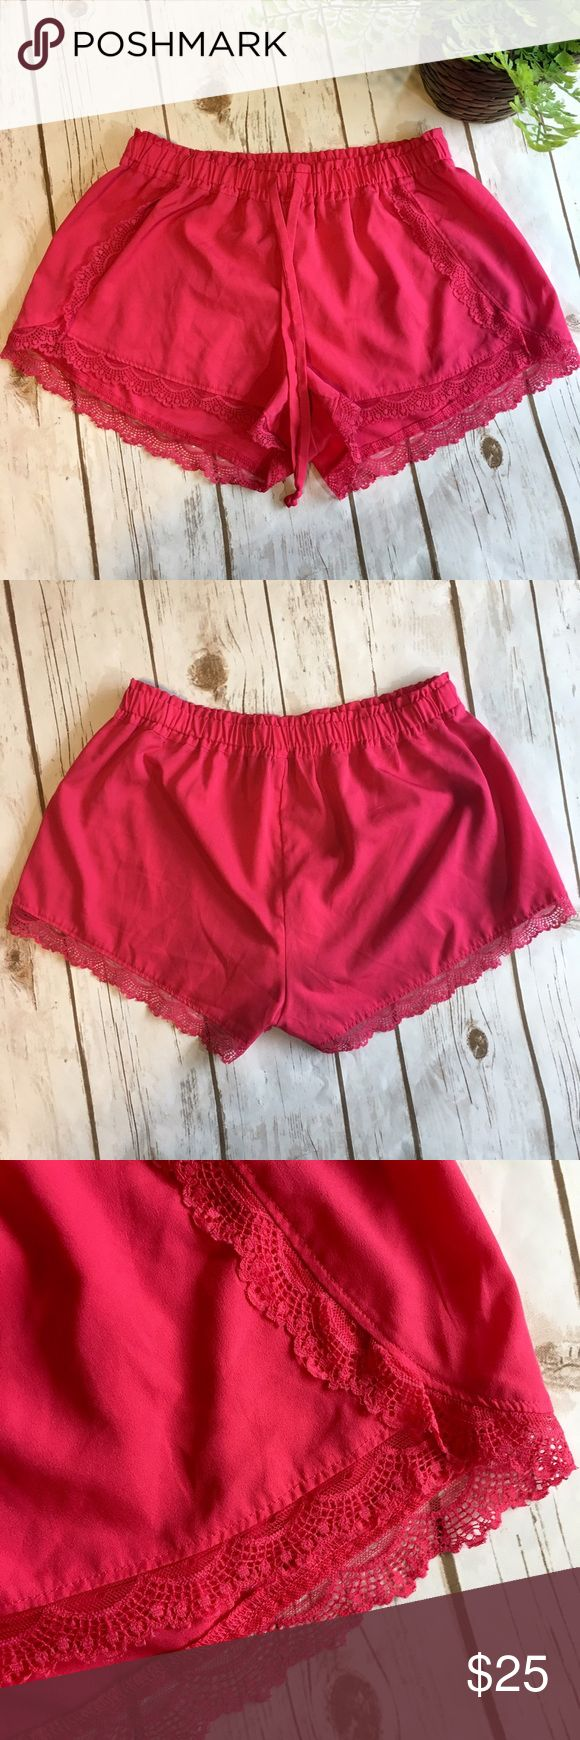 "Pink Aerie Lounge Shorts Pink, Aerie lounge shorts with lace accents. Interior tag shows ""XA, 100% polyester"" Waist has an elastic waistband. Waist measurement approximately: 24 inches to 36 inches when stretched. Aerie Shorts"